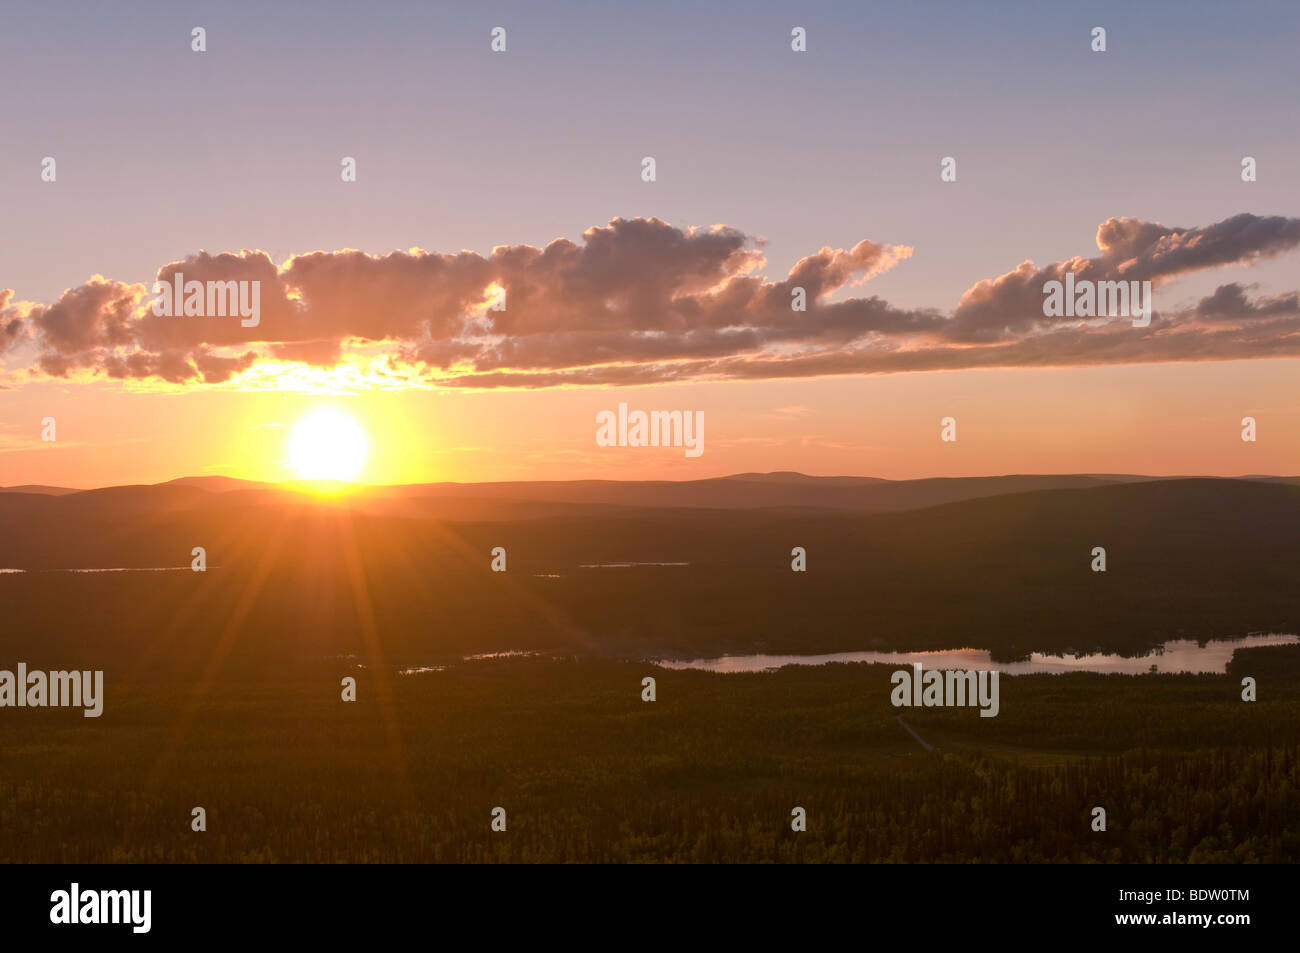 sunset at the fiord, norway Stock Photo